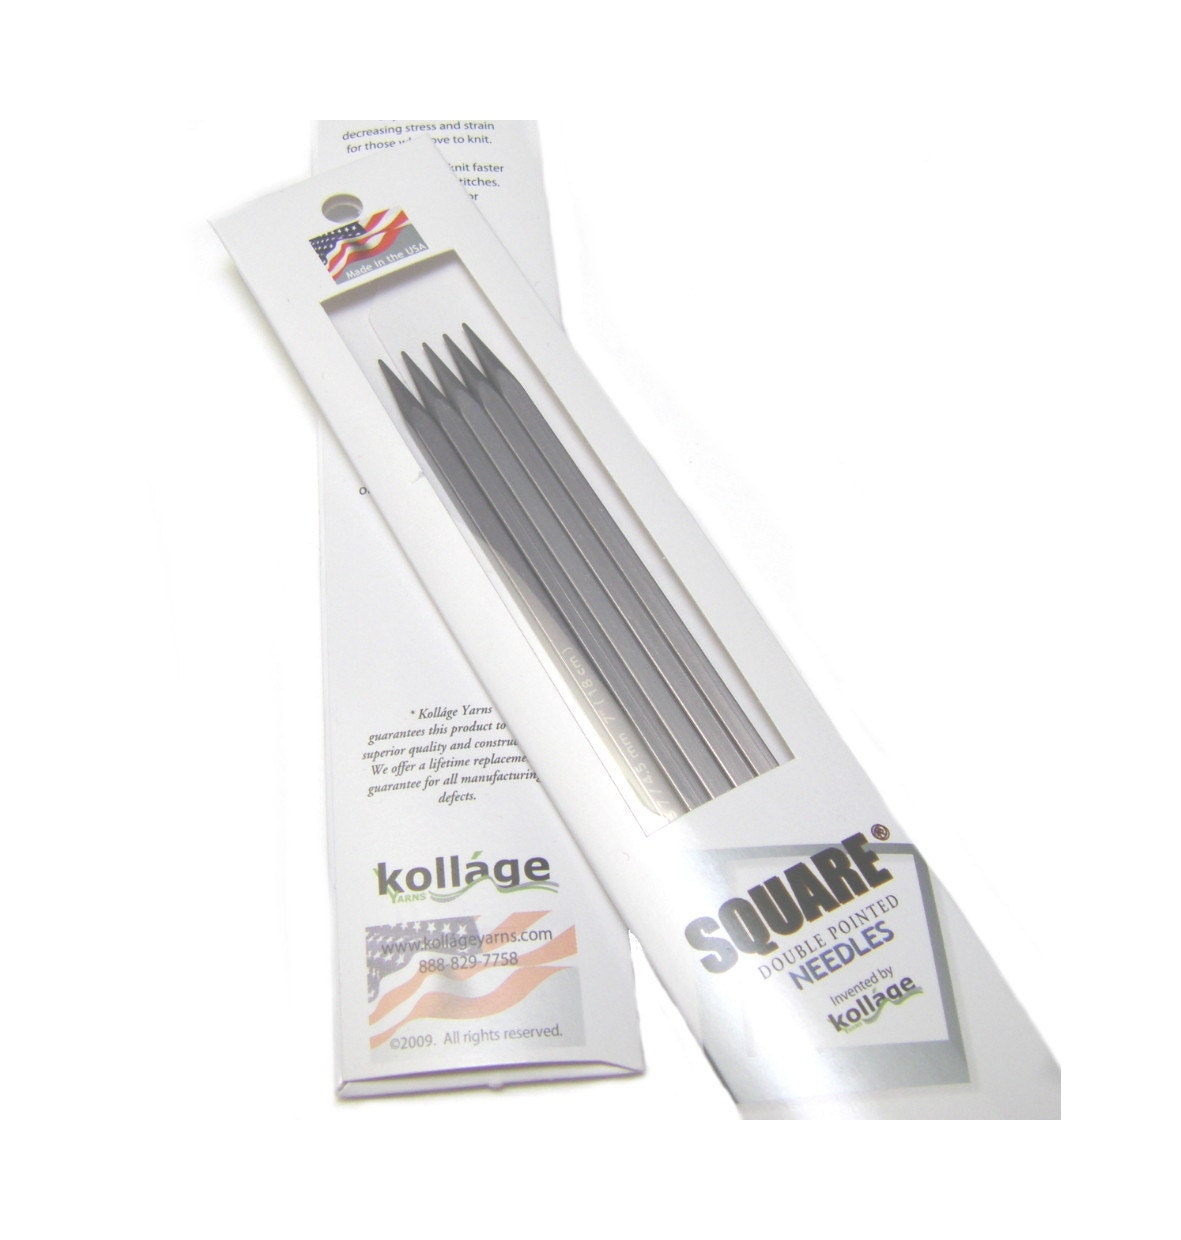 Kollage Knitting Needles : Kollage Square double pointed knitting needles US9 by knit1sip2